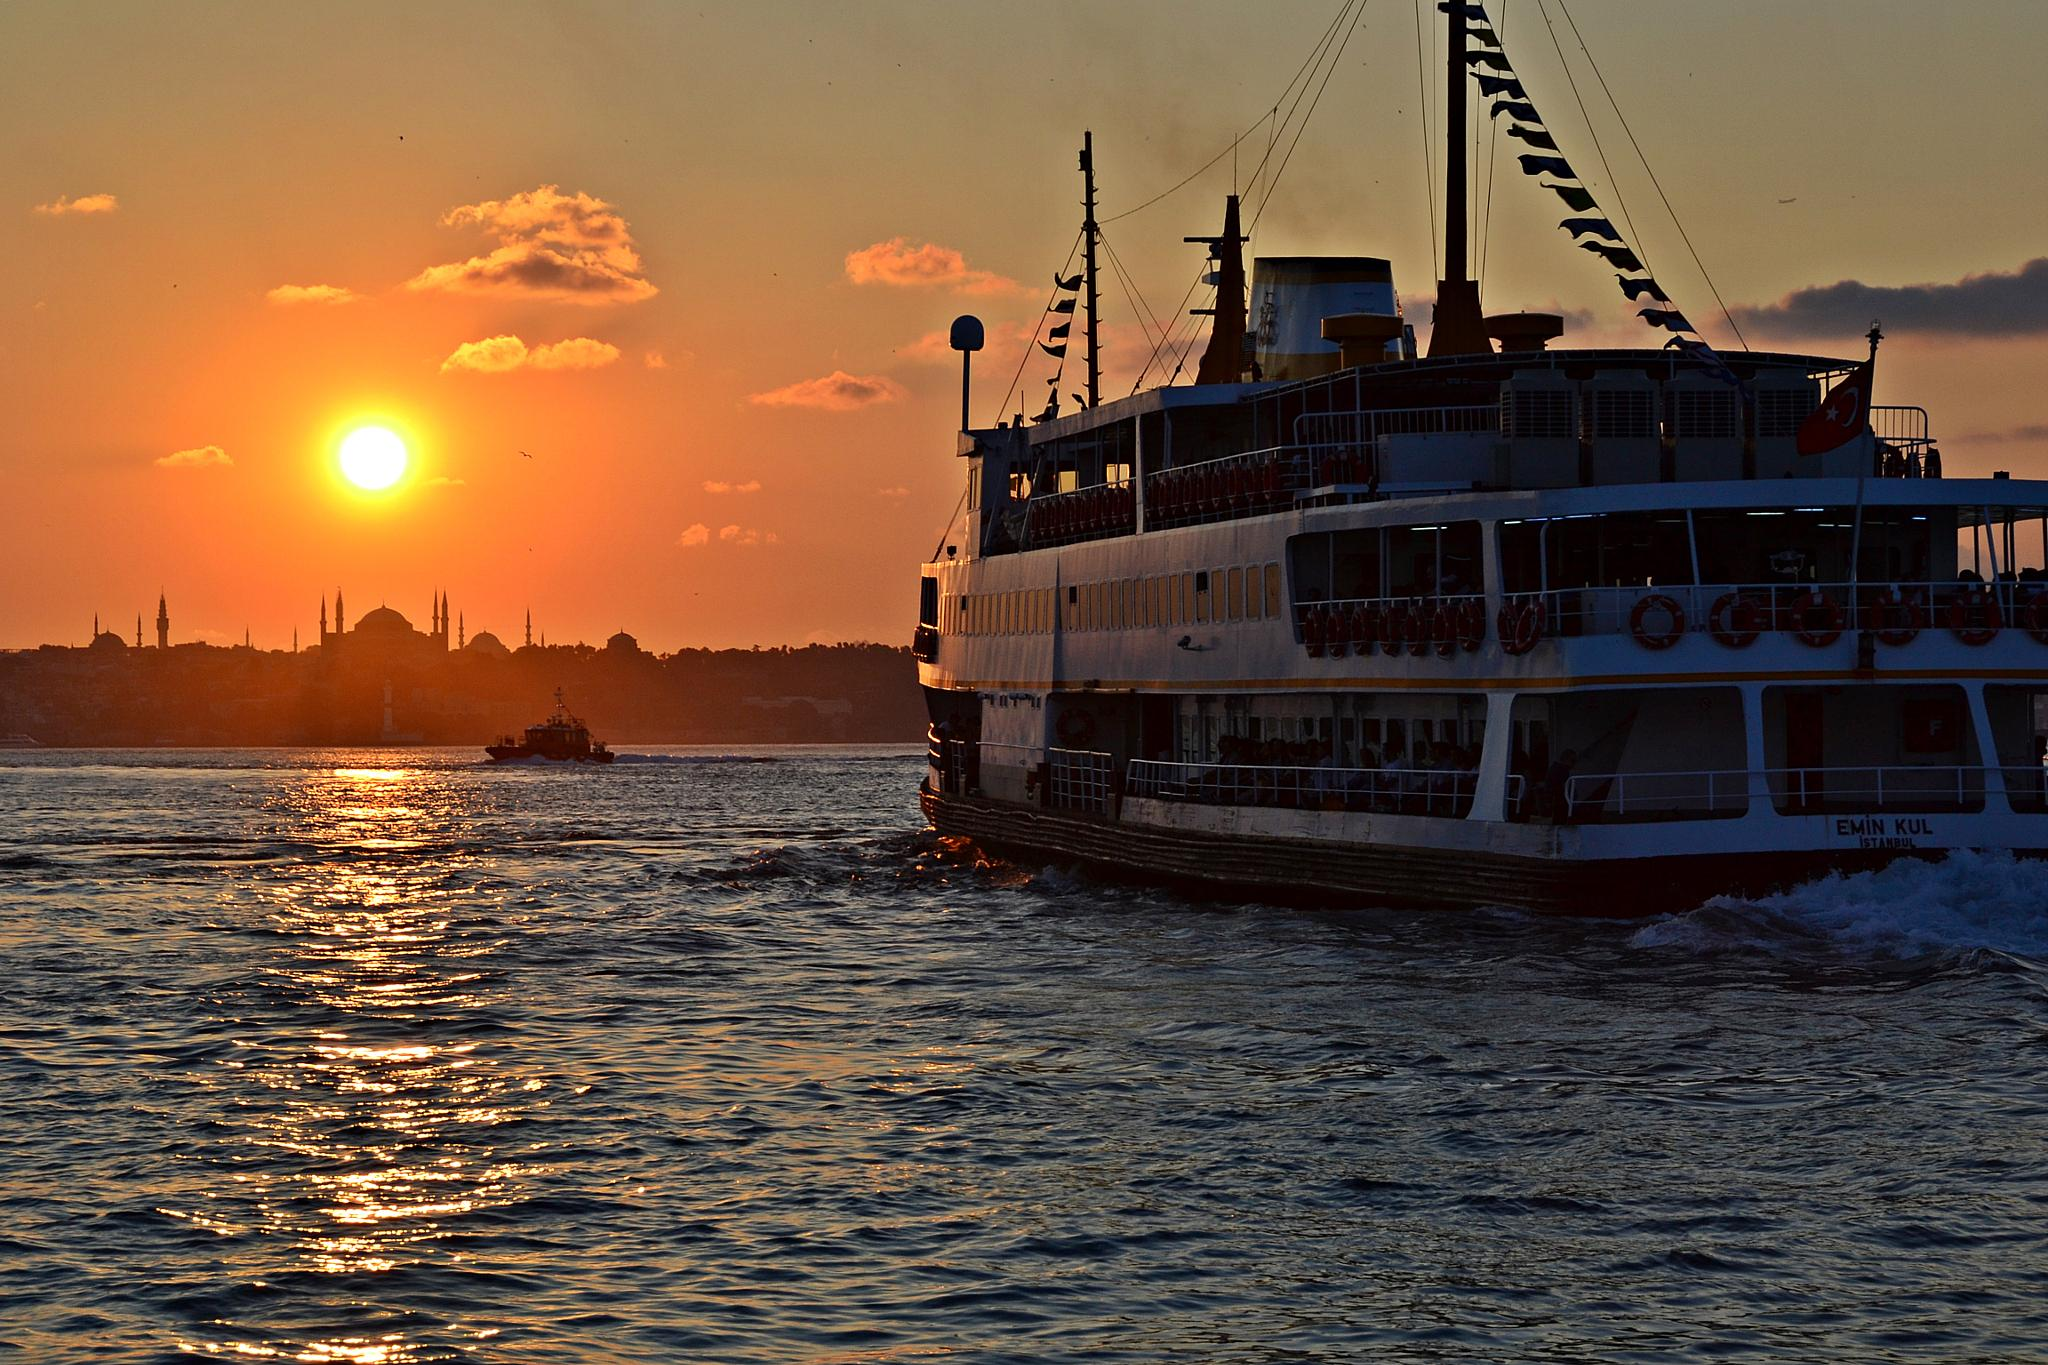 Another sunset in Istanbul. by A.Hikmet Karaca